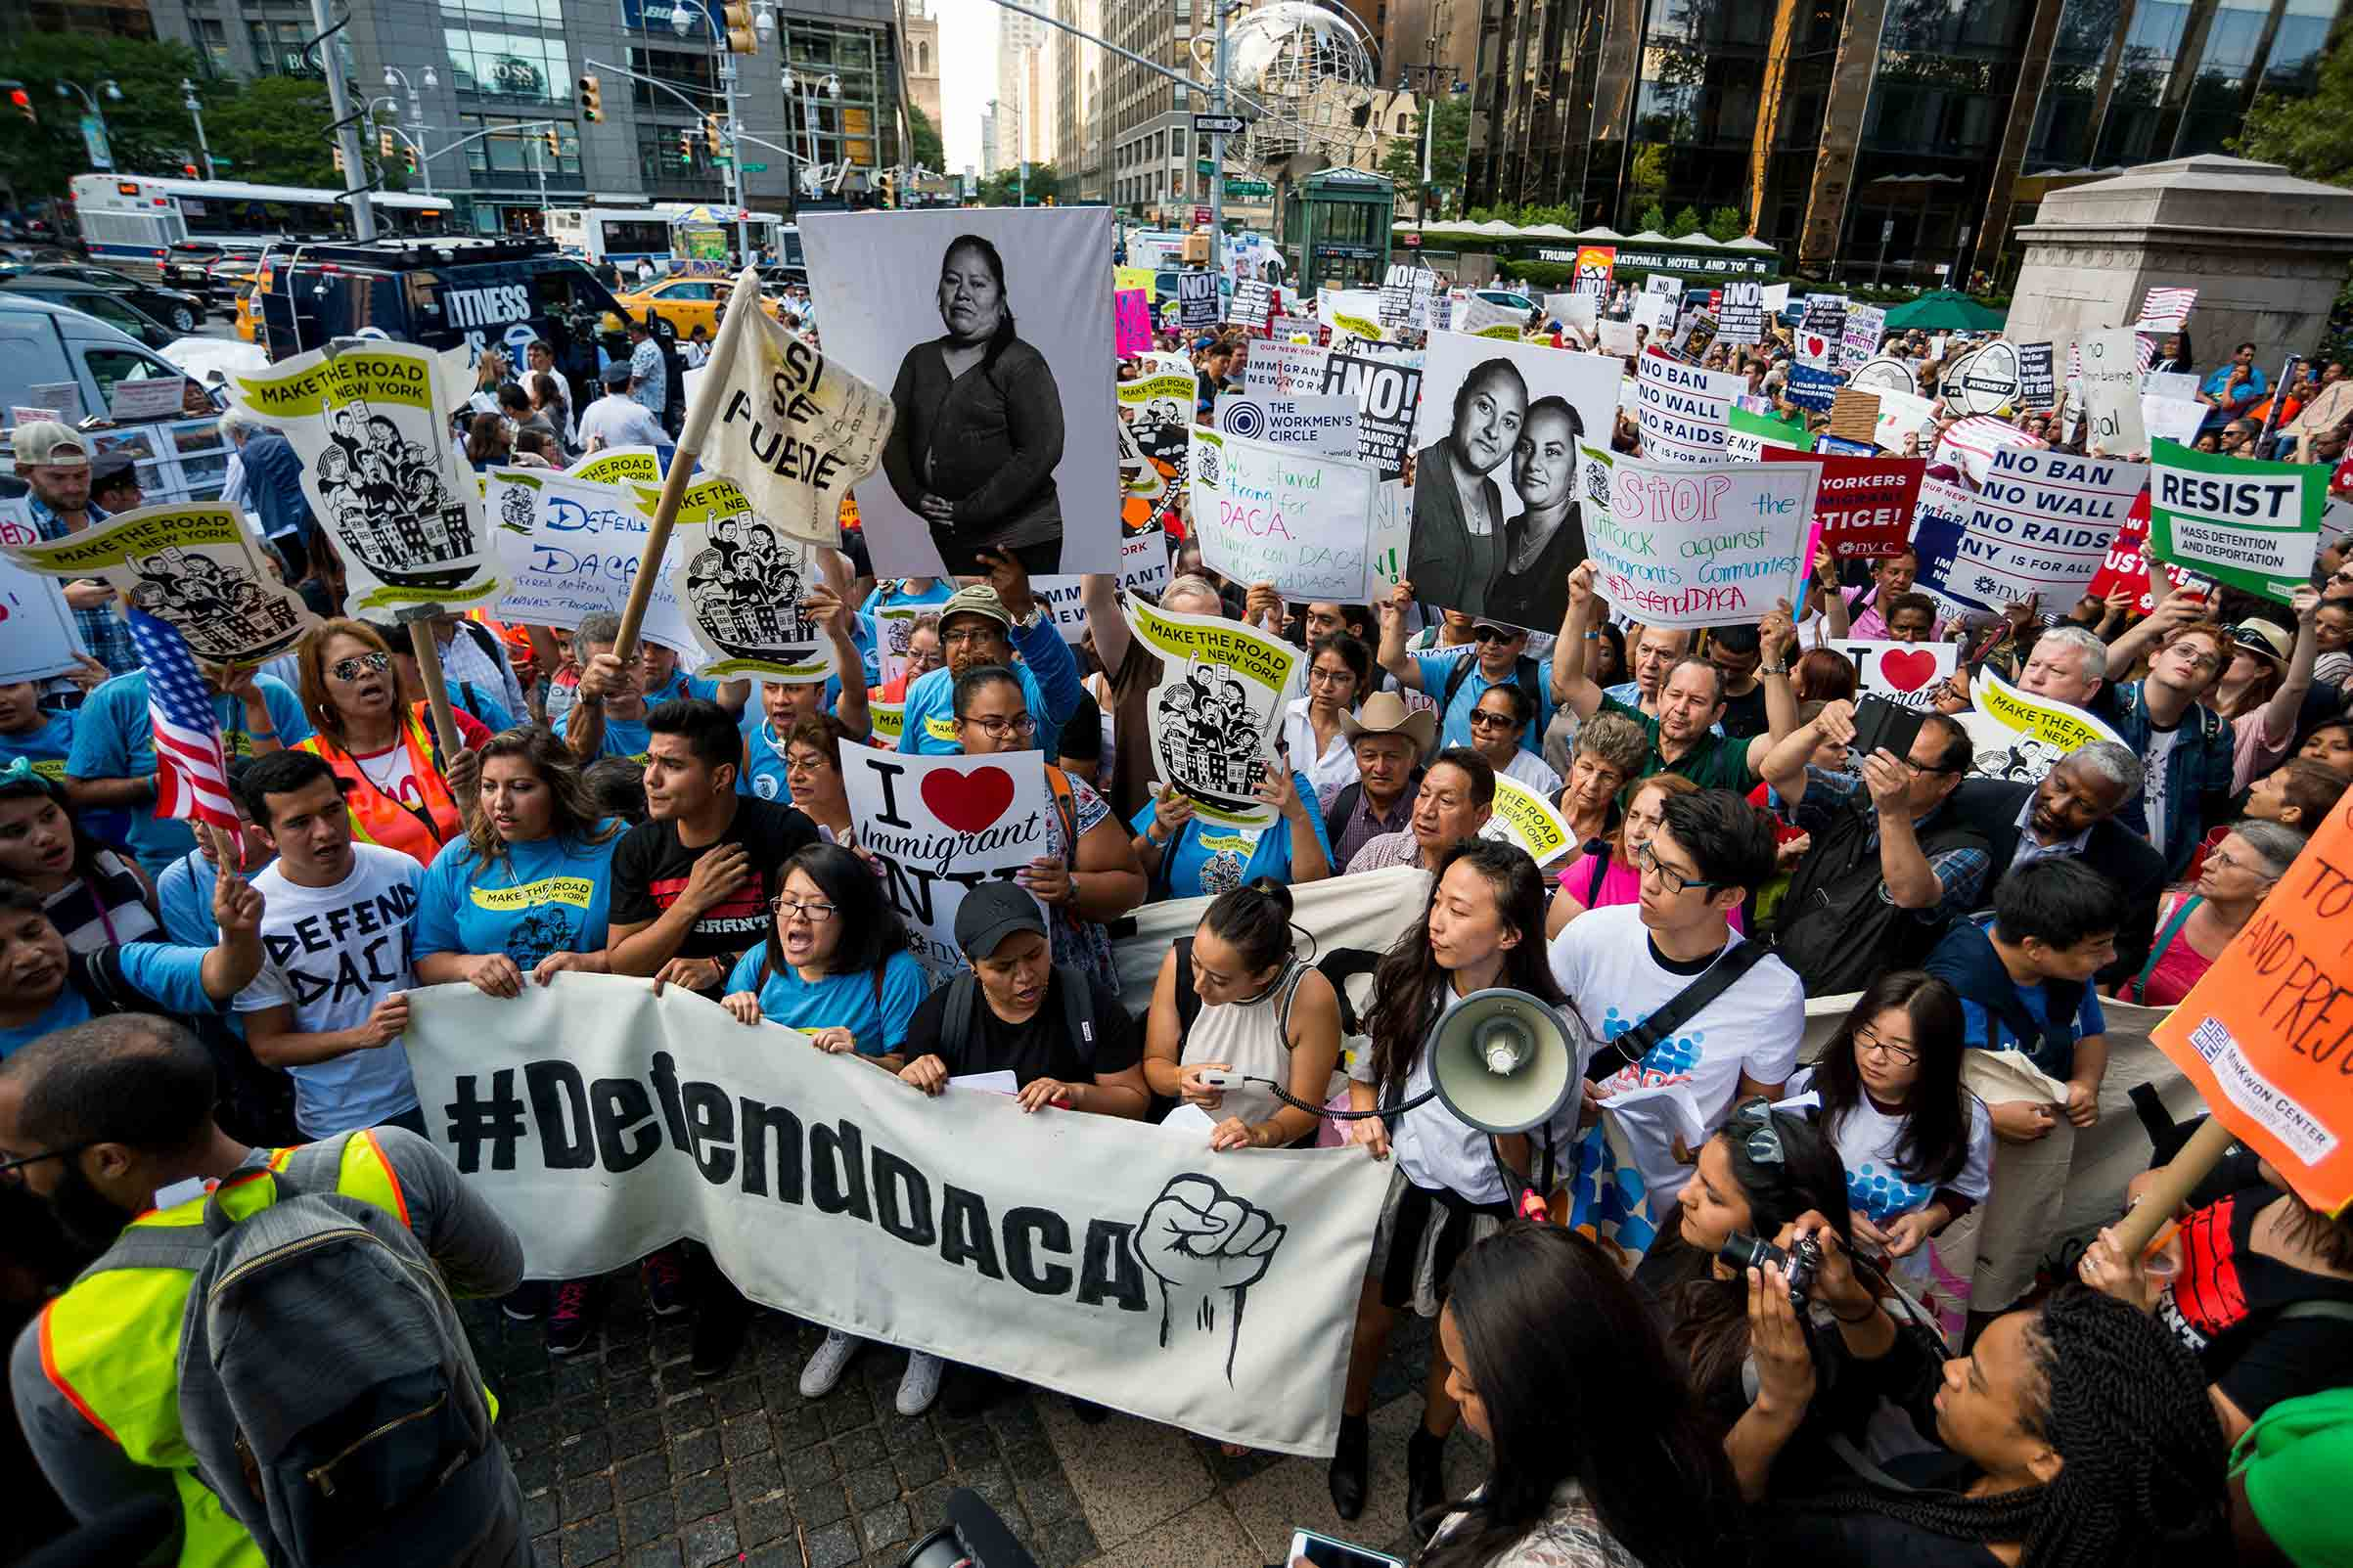 Activists rallied in Columbus Circle and marched from there to Trump Tower in protest of President Donald Trump's possible elimination of the Obama-era  Deferred Action for Childhood Arrivals  (DACA) which curtails deportation of an estimated 800,000 undocumented immigrants.